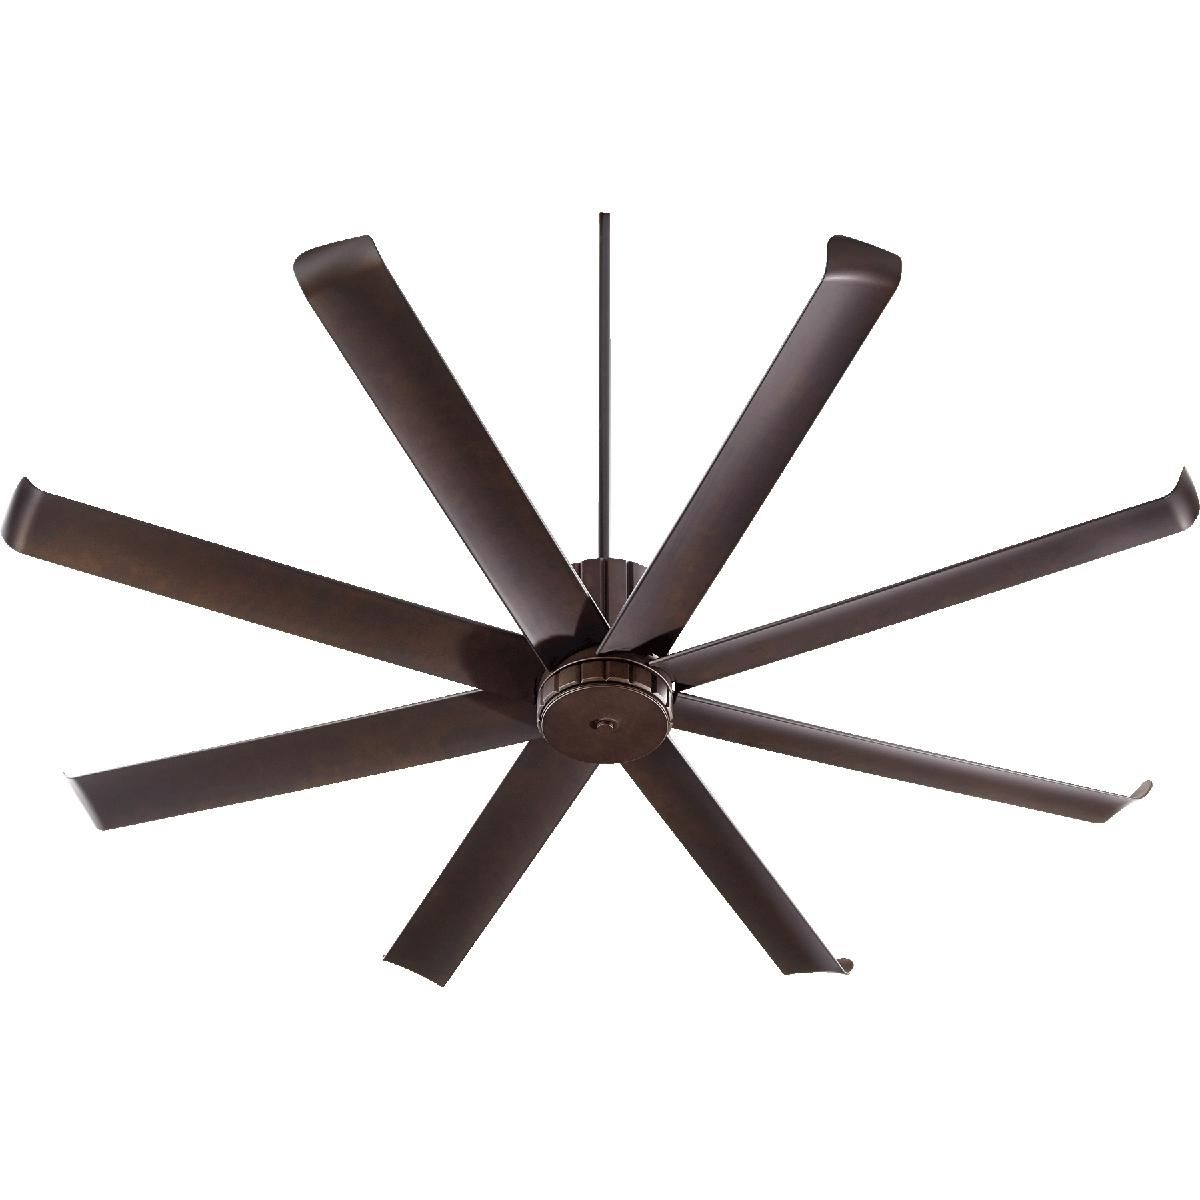 "Famous 72"" Angled Spoke Indoor/outdoor Ceiling Fan (View 4 of 20)"